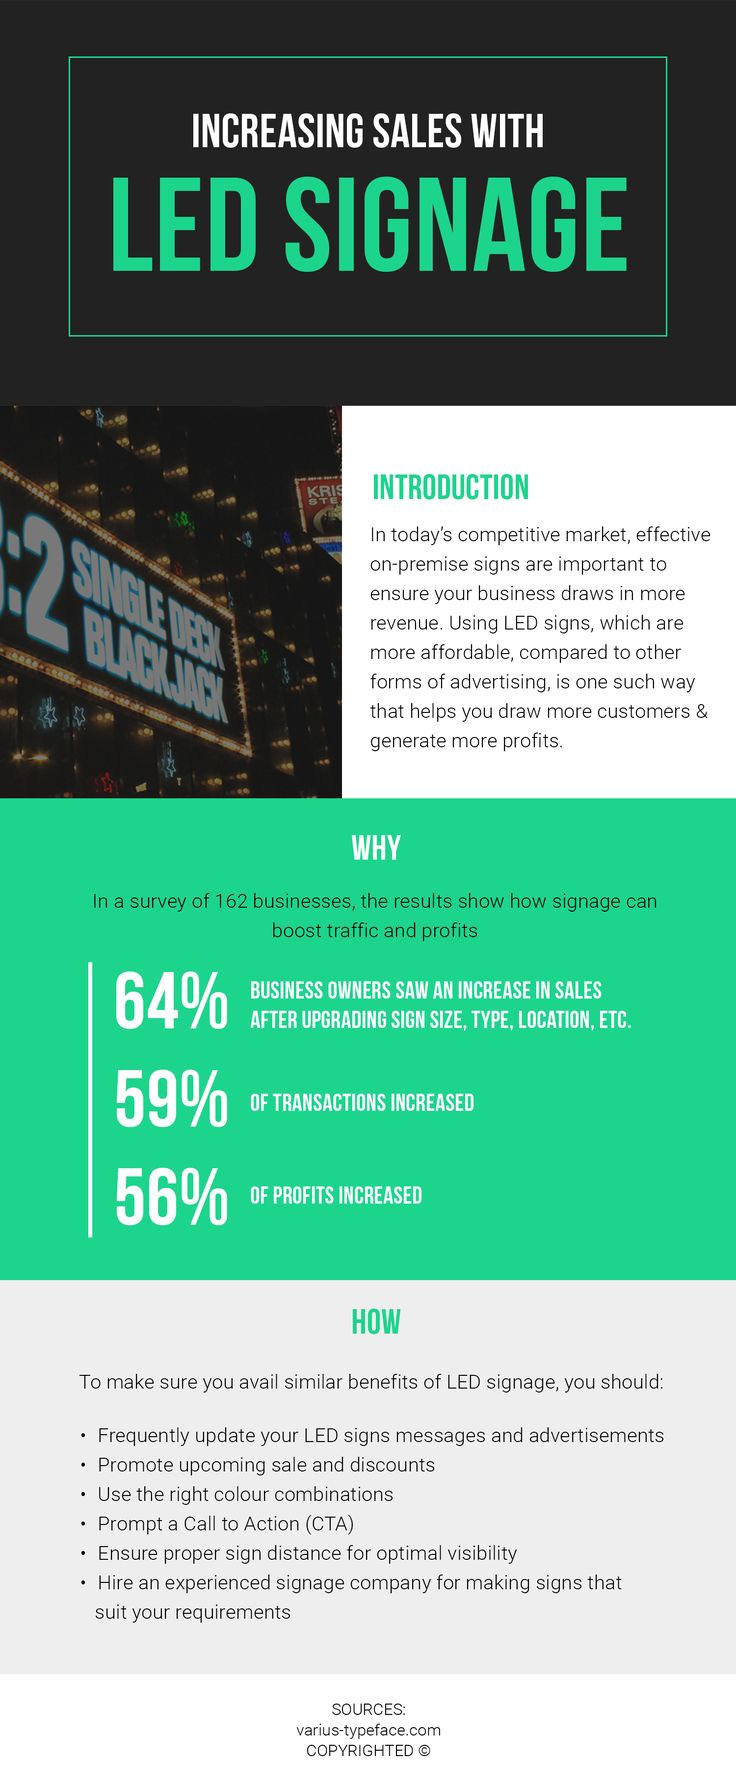 One of the most effective forms of advertising in today's competitive market is using LED signs. To increase sales with these signs, make sure you prompt a call to action, hire an experienced signage company and others.